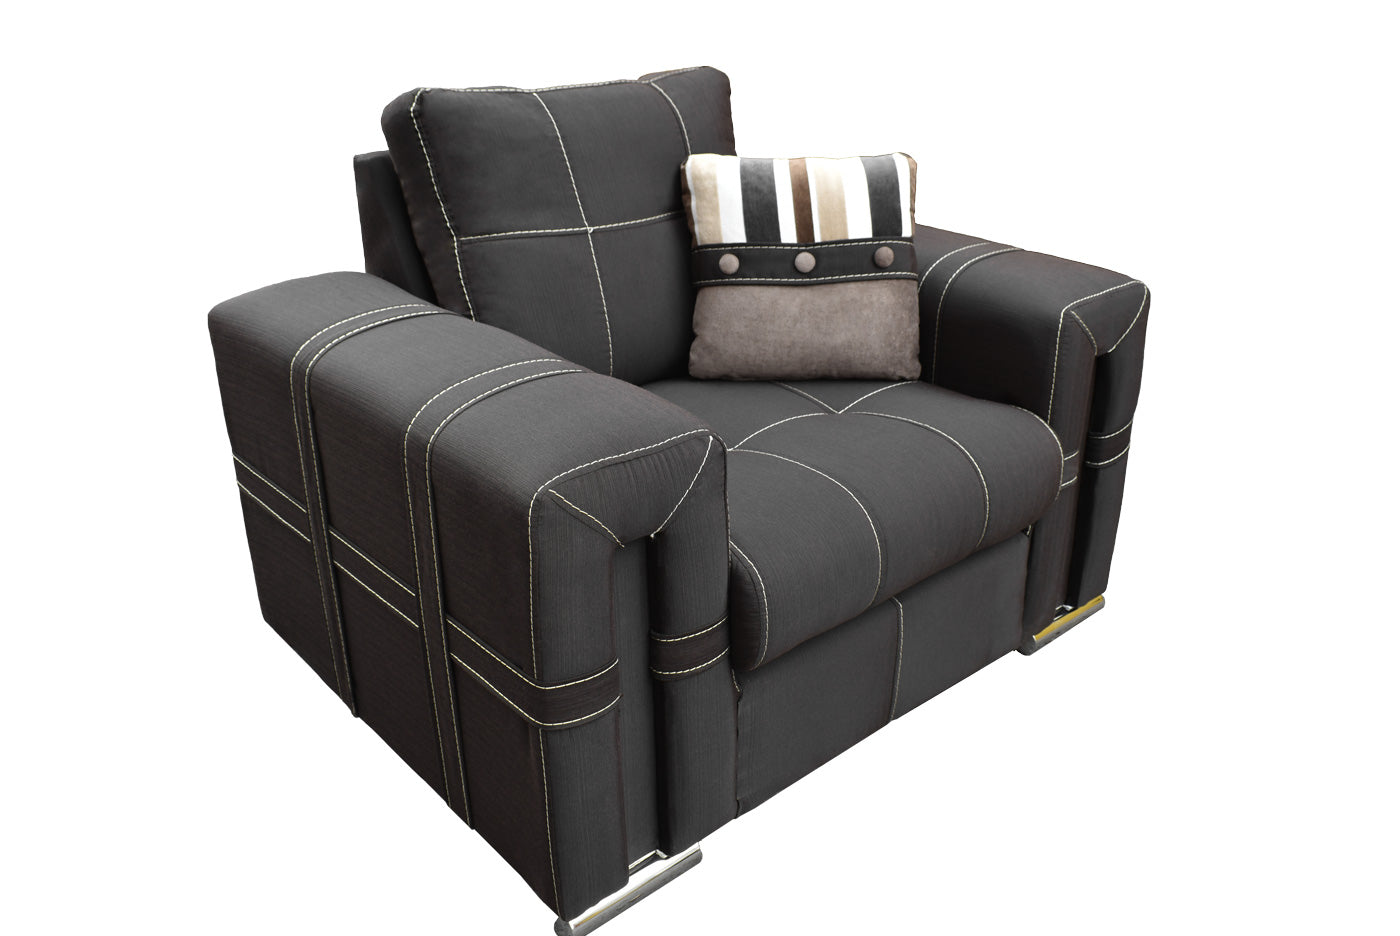 SILLON ORION HIT COCOA